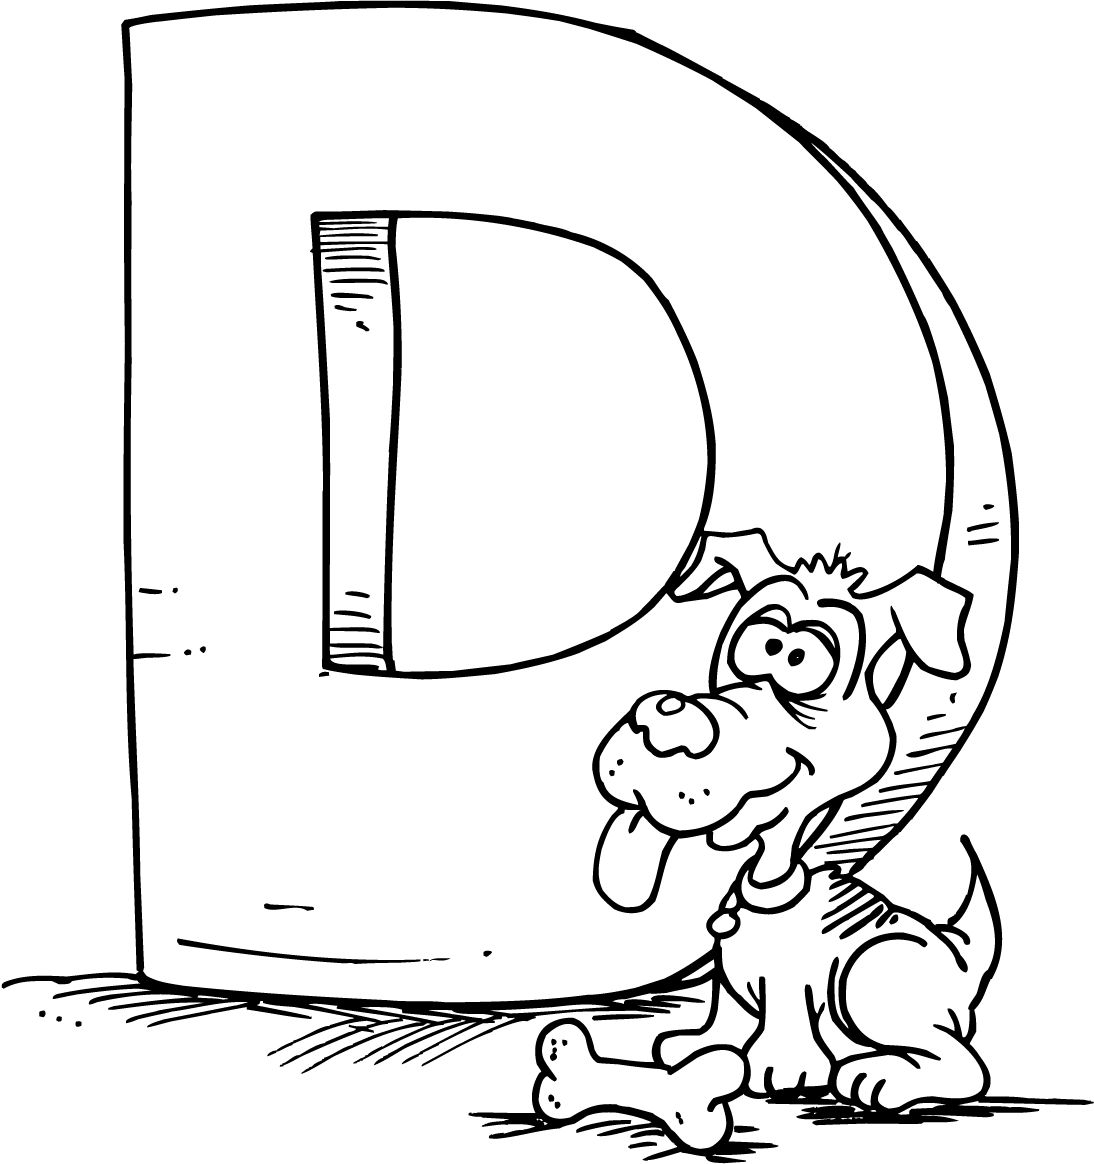 Get The Latest Free Letter D Coloring Pages Images Favorite To Print Online By ONLY COLORING PAGES